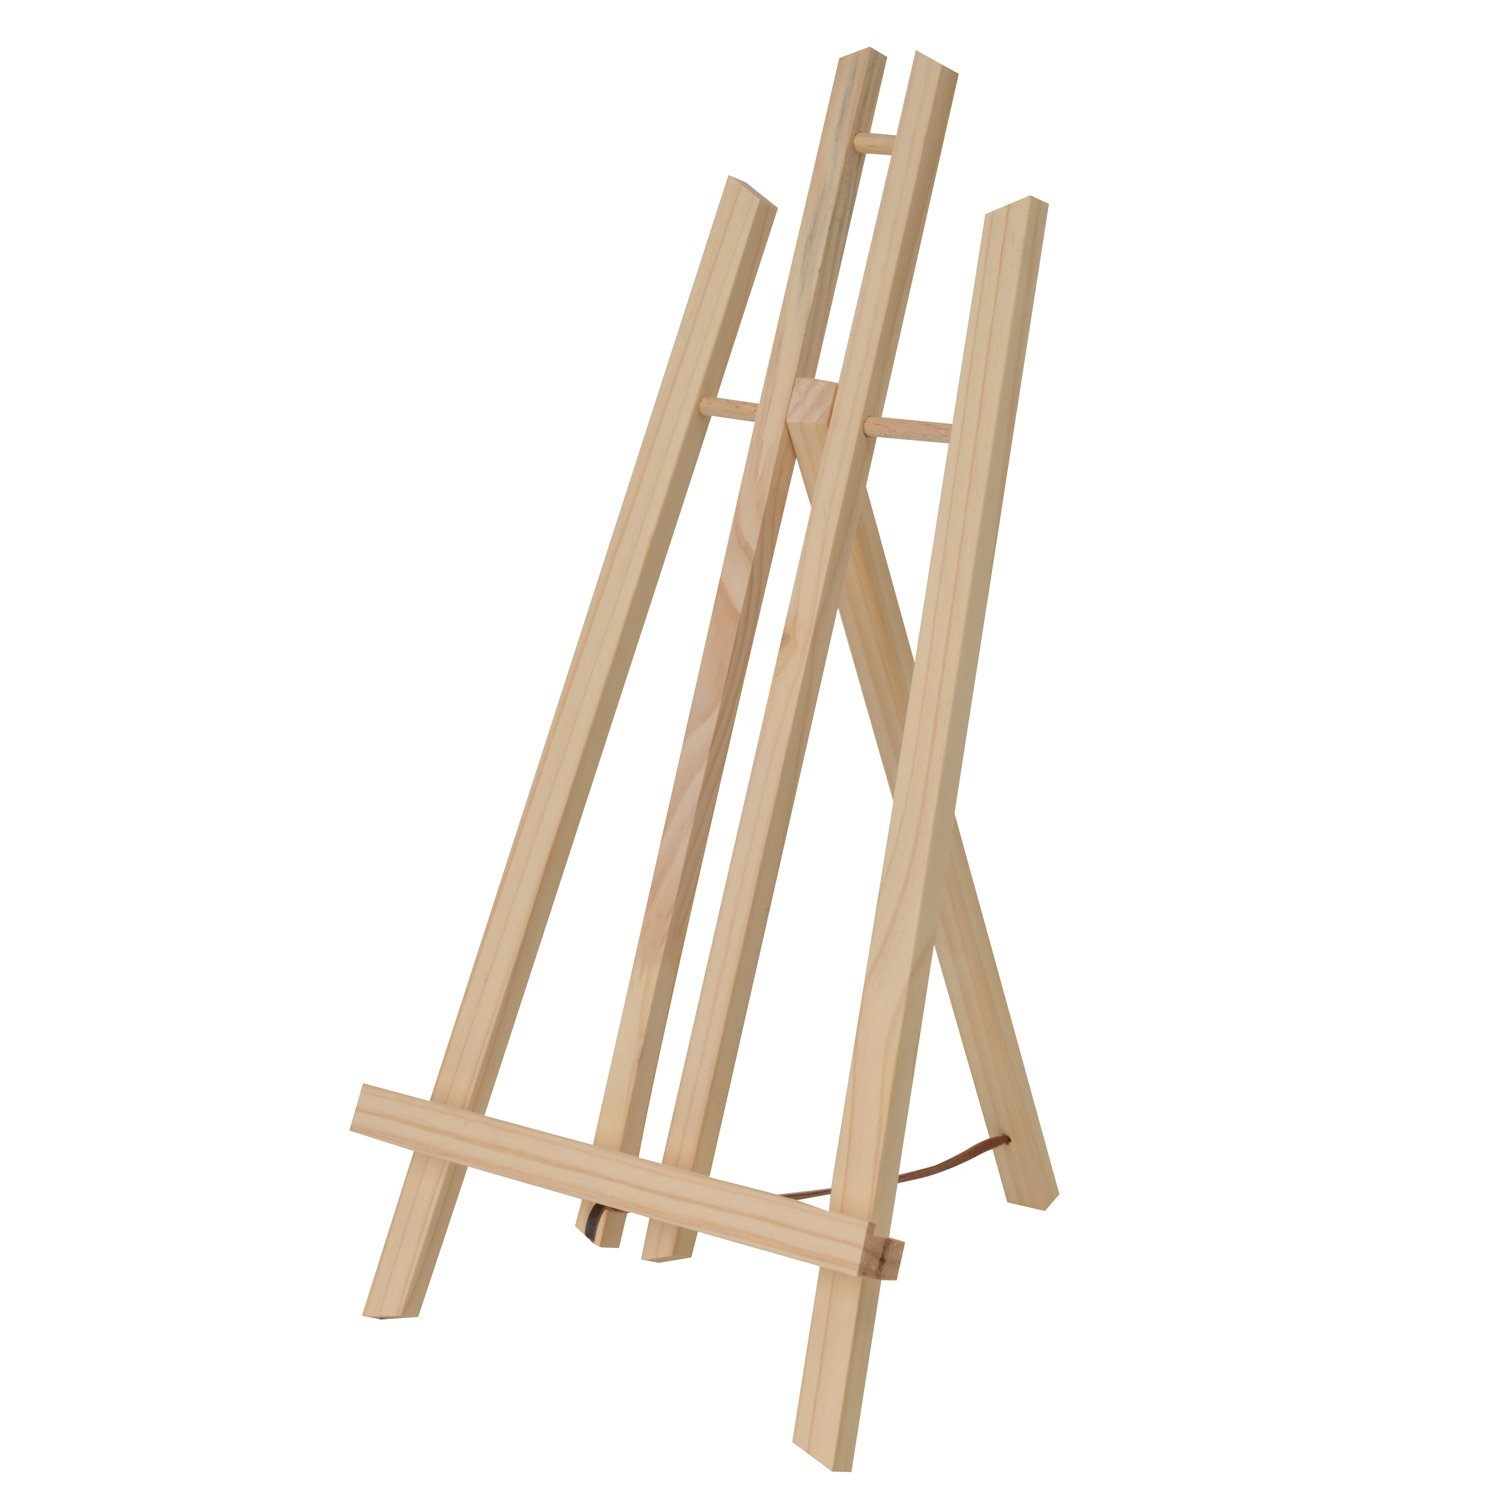 Artina Display Easel London - Pine-Wood Table Easel - Oil Paint Art Set - incl. Brushes. Spatulas and Canvases